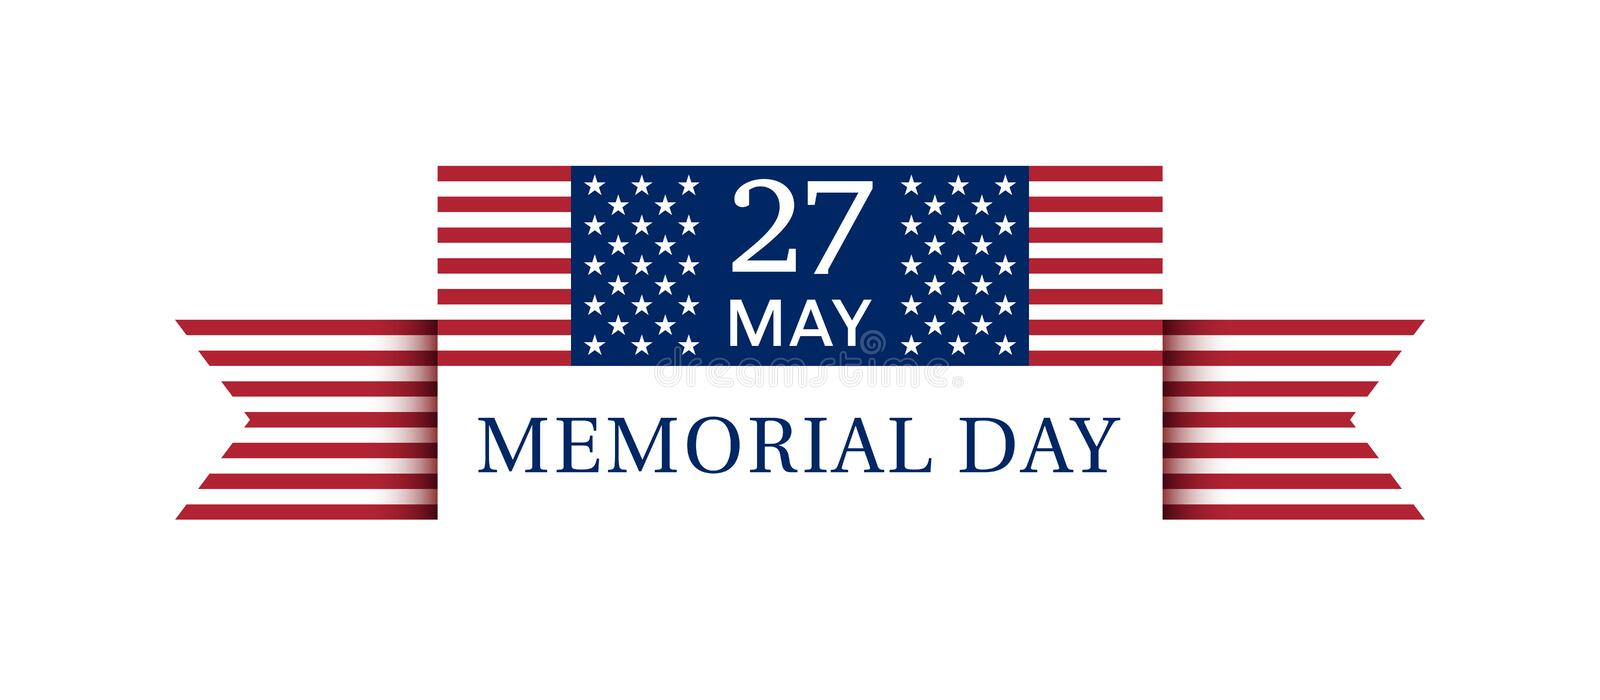 USA Memorial Day Poster May 27, 2019 stock illustration